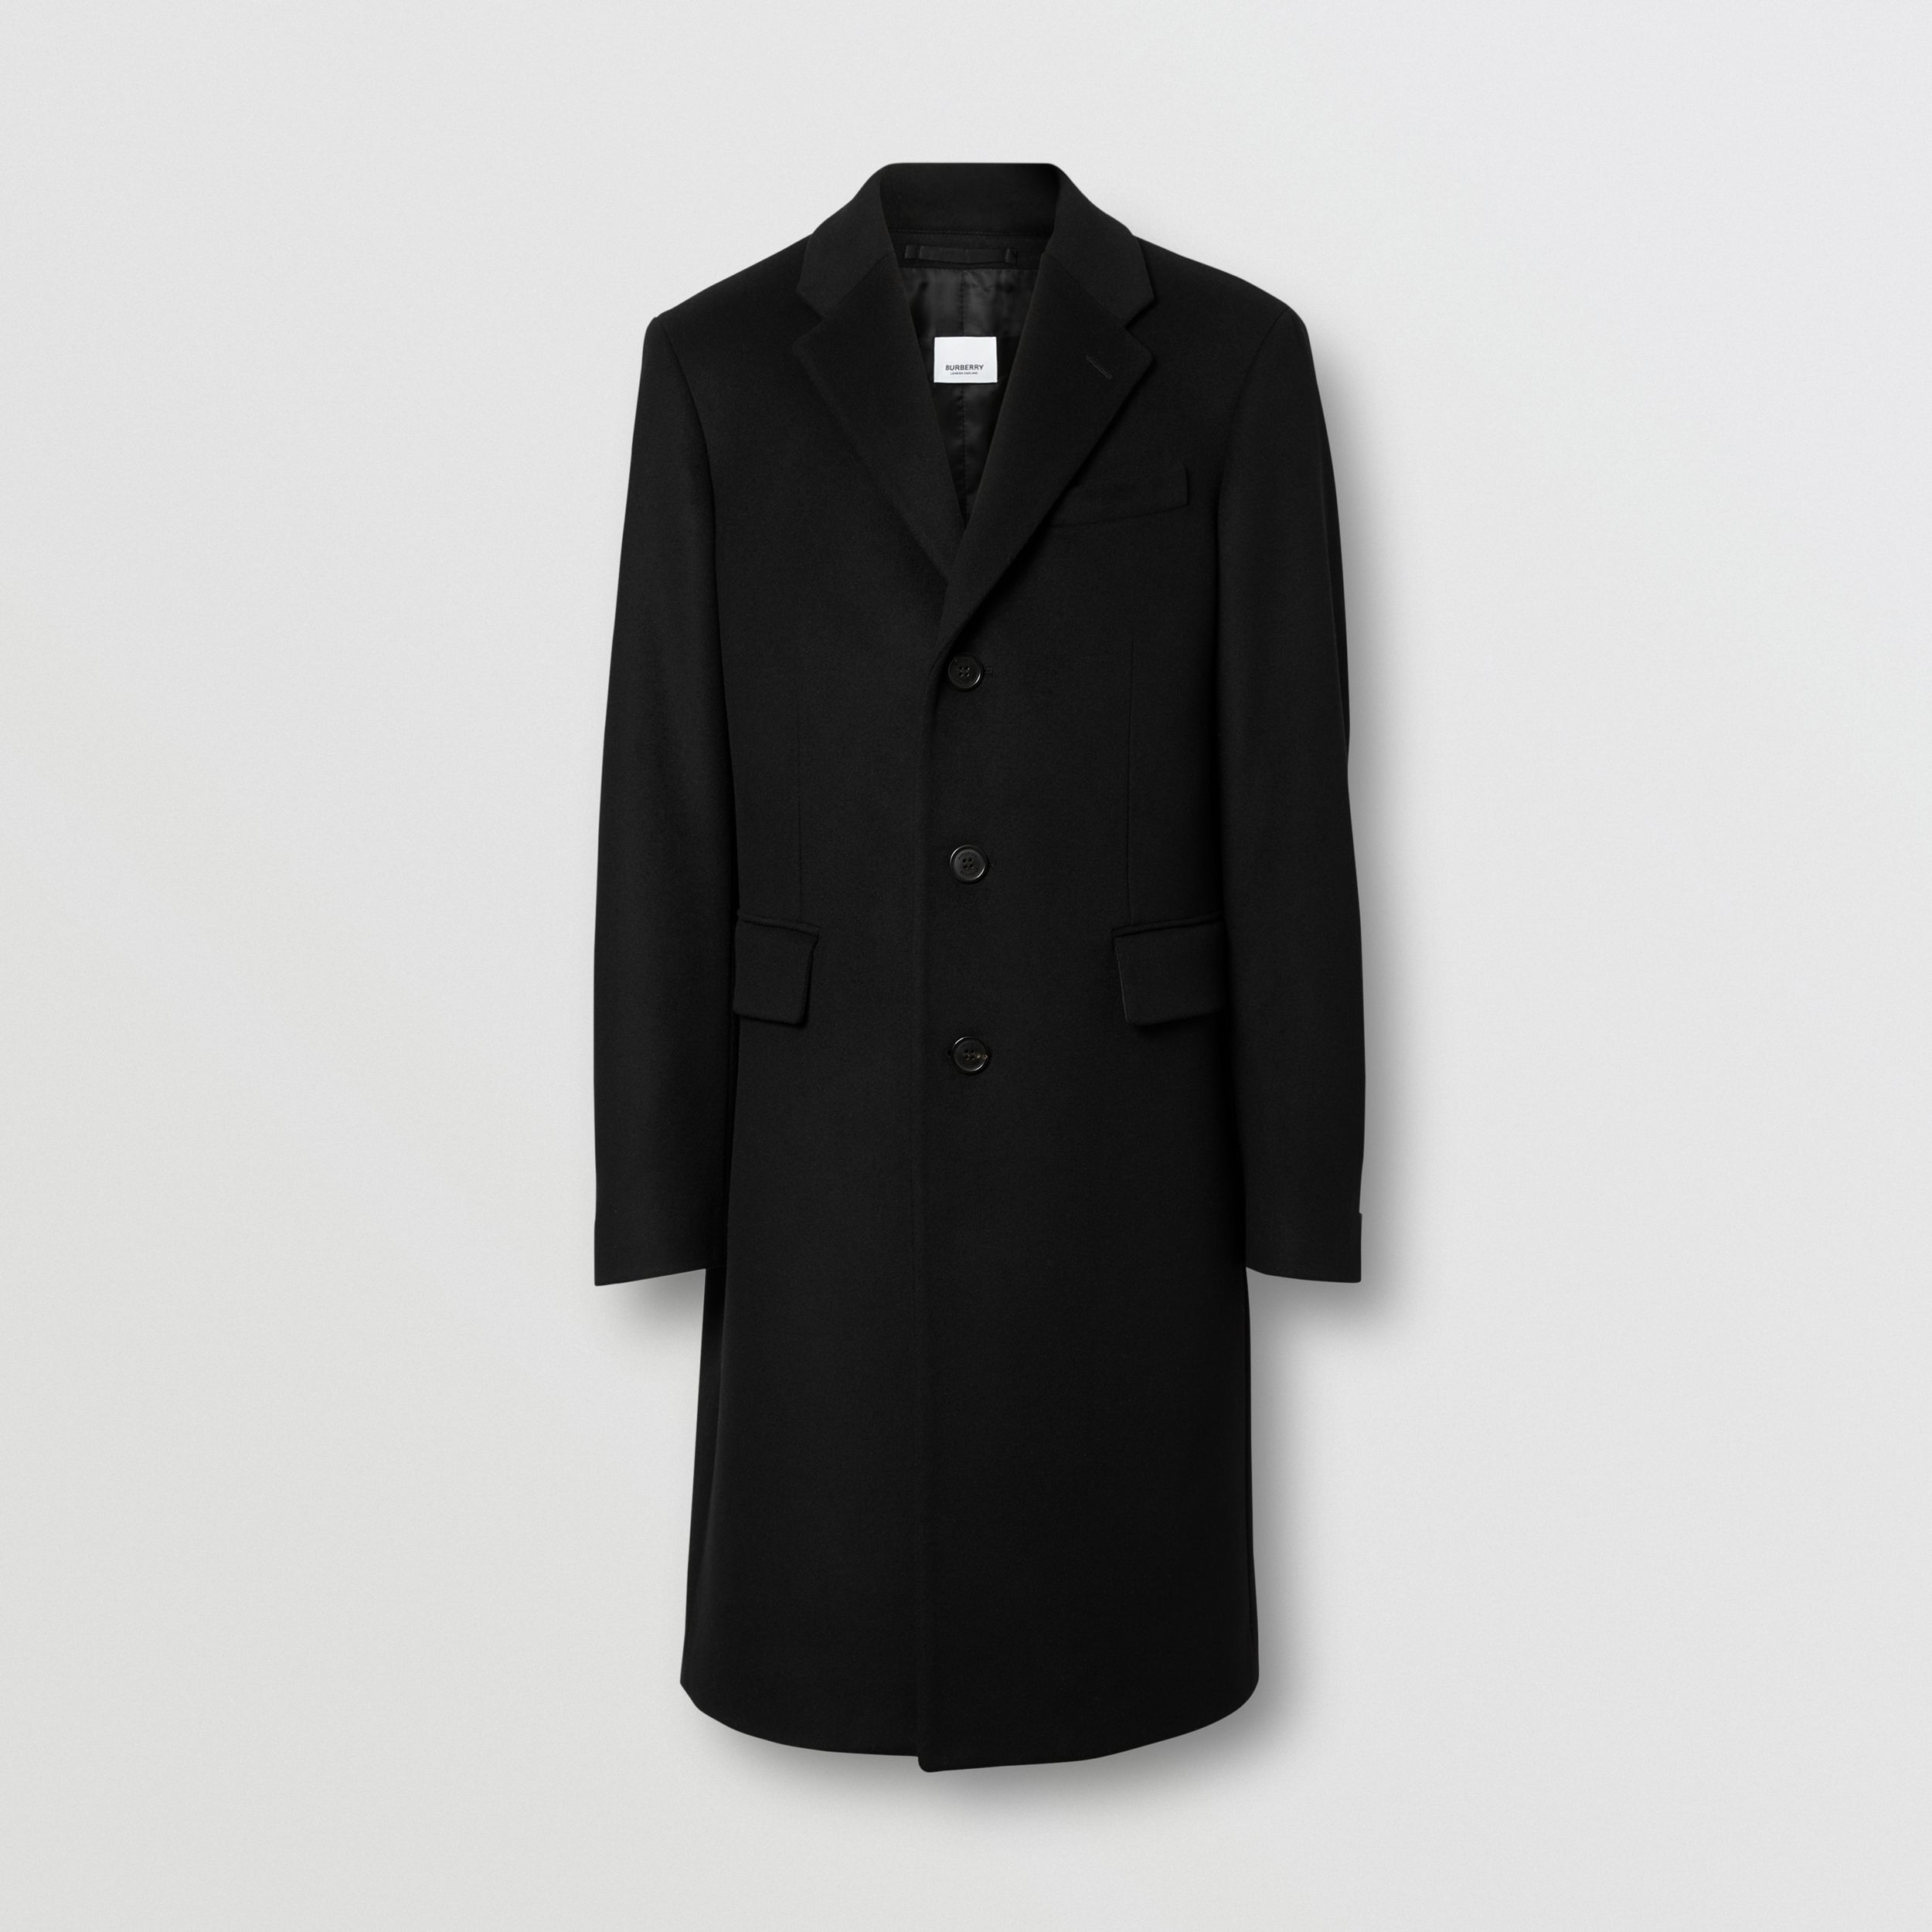 Wool Cashmere Tailored Coat in Black - Men | Burberry United States - 4